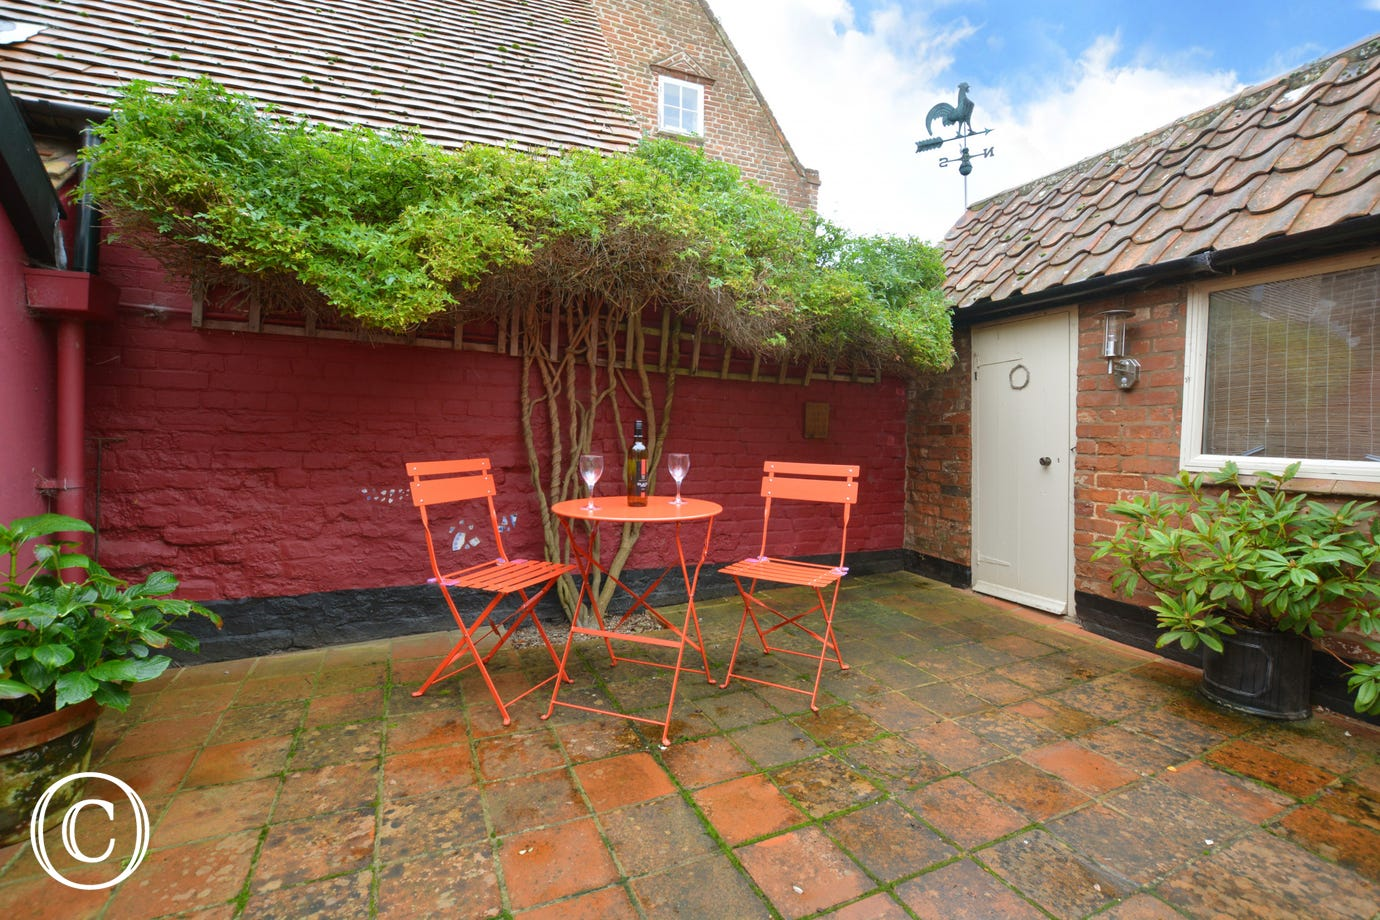 Courtyard with table and chair for a spot of alfresco dining